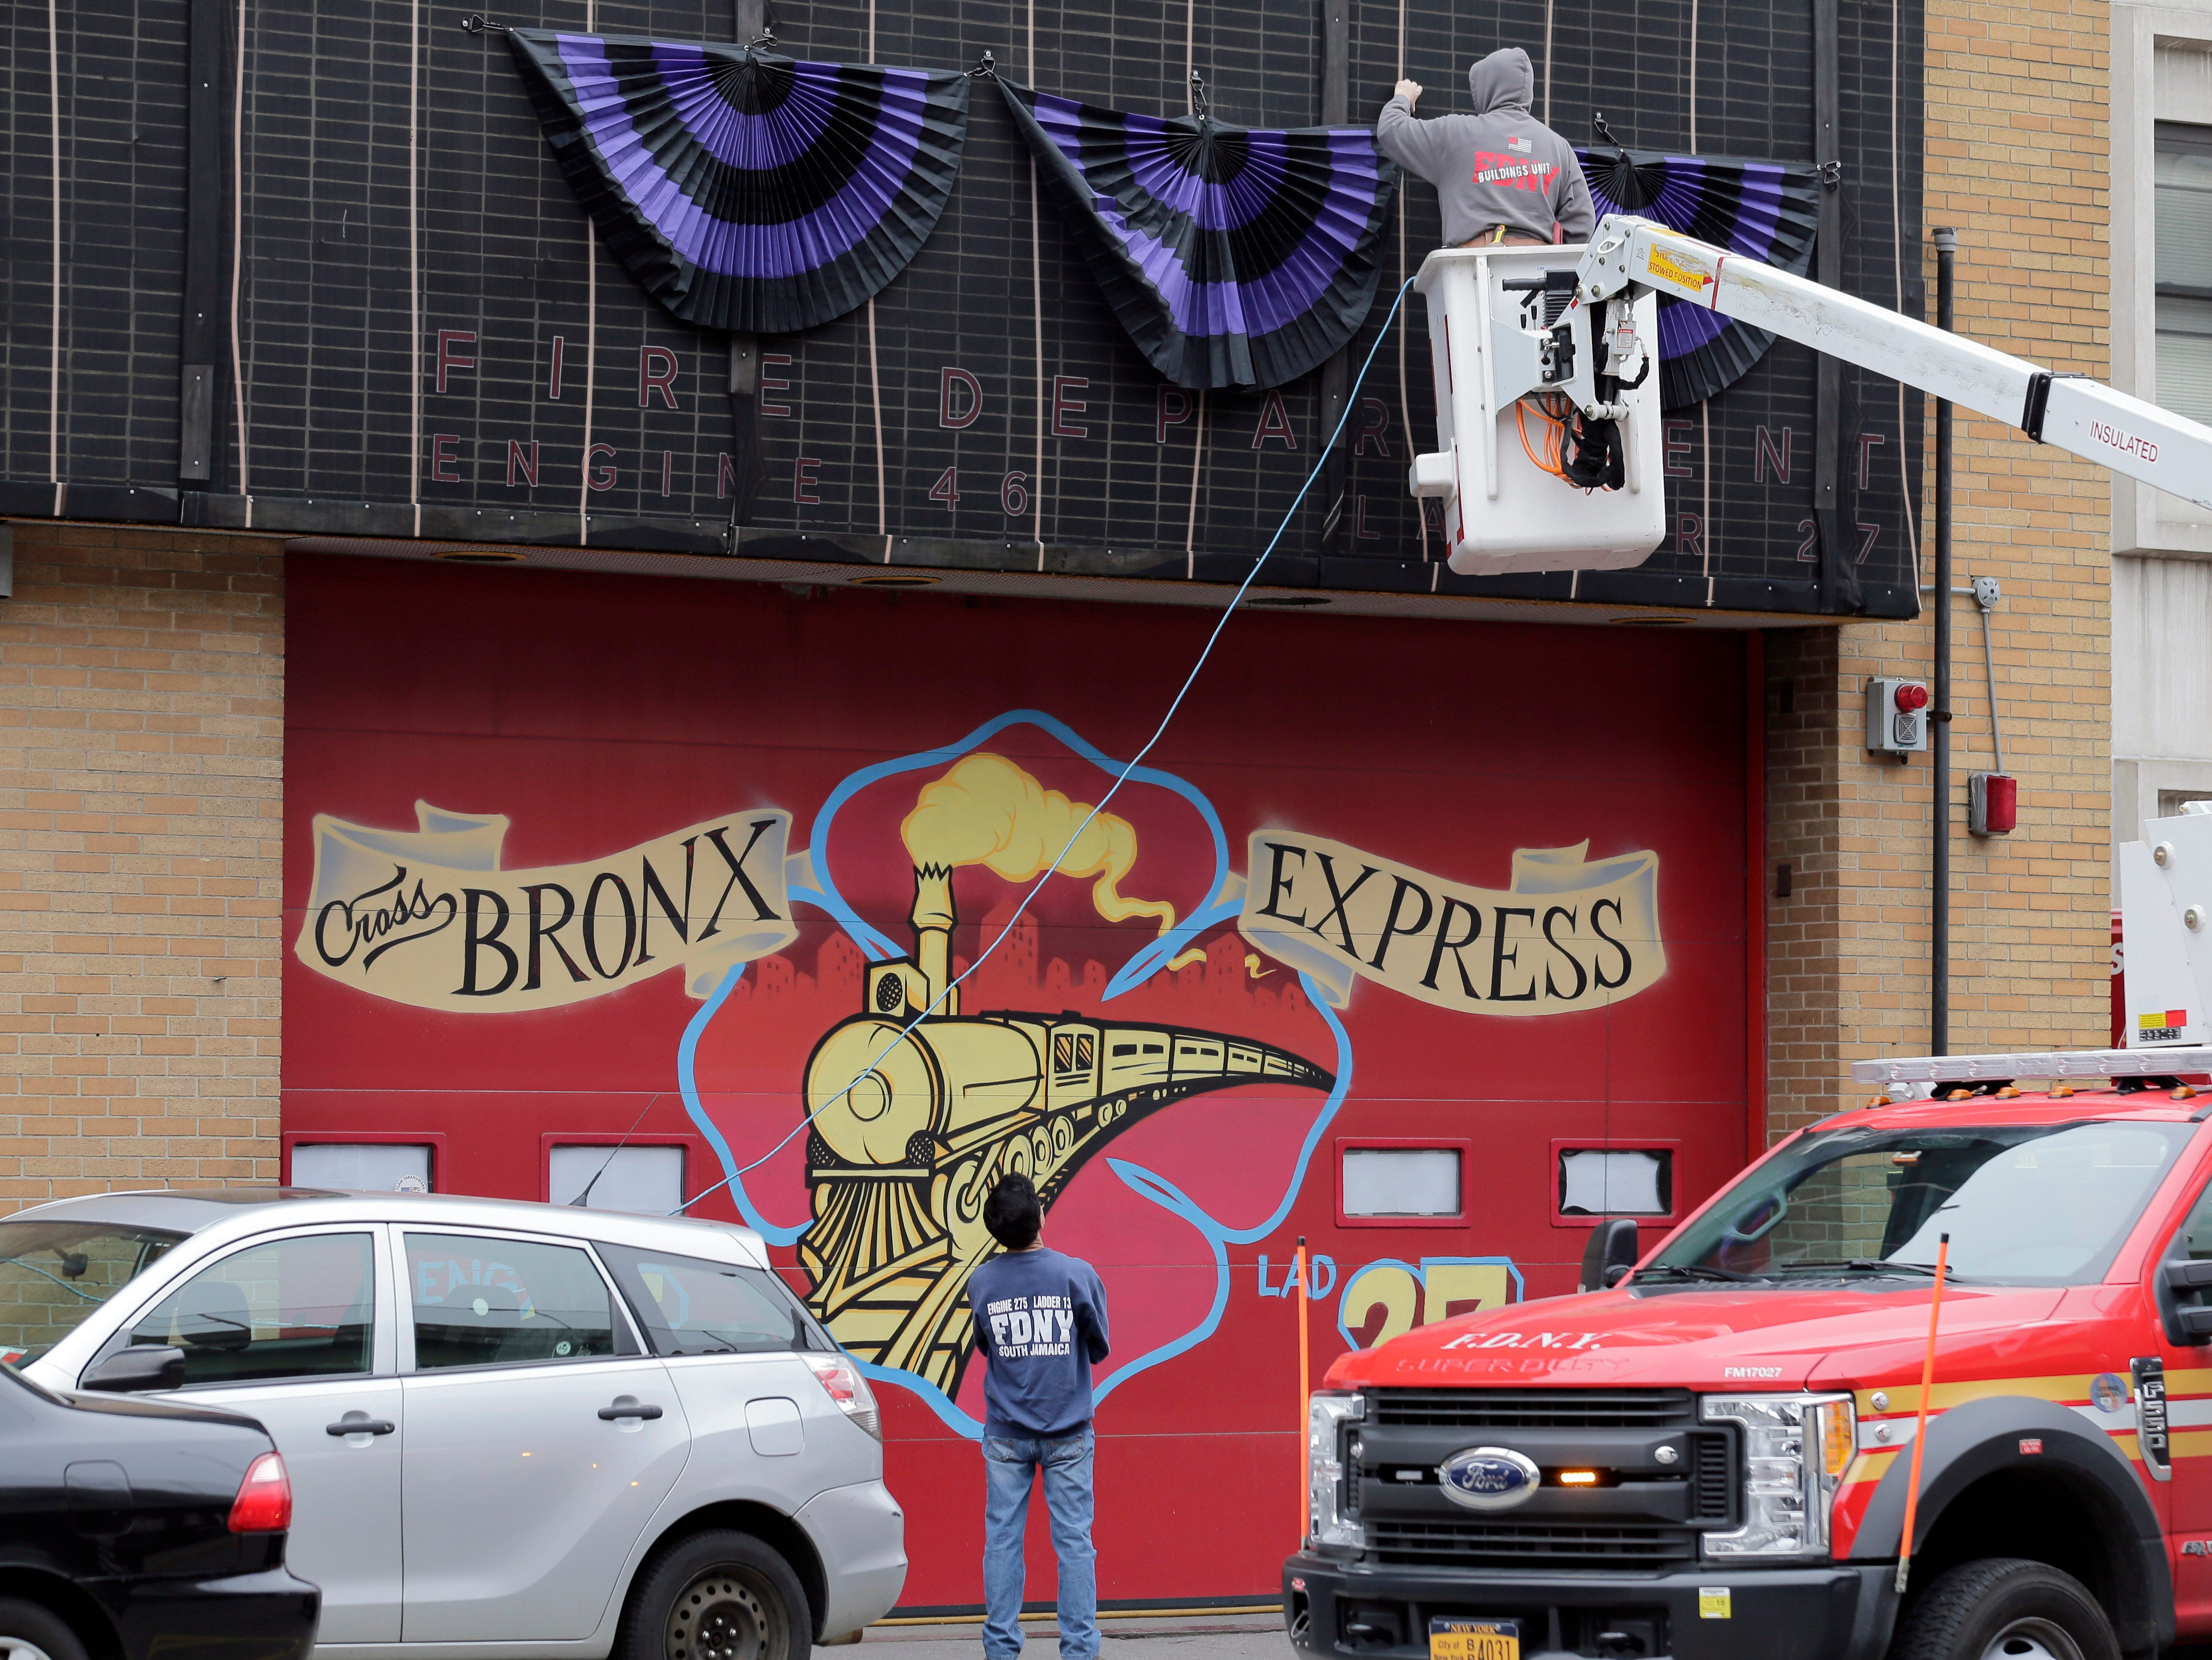 A firefighter hangs bunting over a firehouse in the Bronx borough of New York, Tuesday, April 9, 2019.   Christopher Slutman, a 15-year FDNY member, was among three American service members killed by a roadside bomb in Afghanistan on Monday.  New York City said Slutman was the fourth FDNY member to die while serving in Iraq or Afghanistan since 2003.